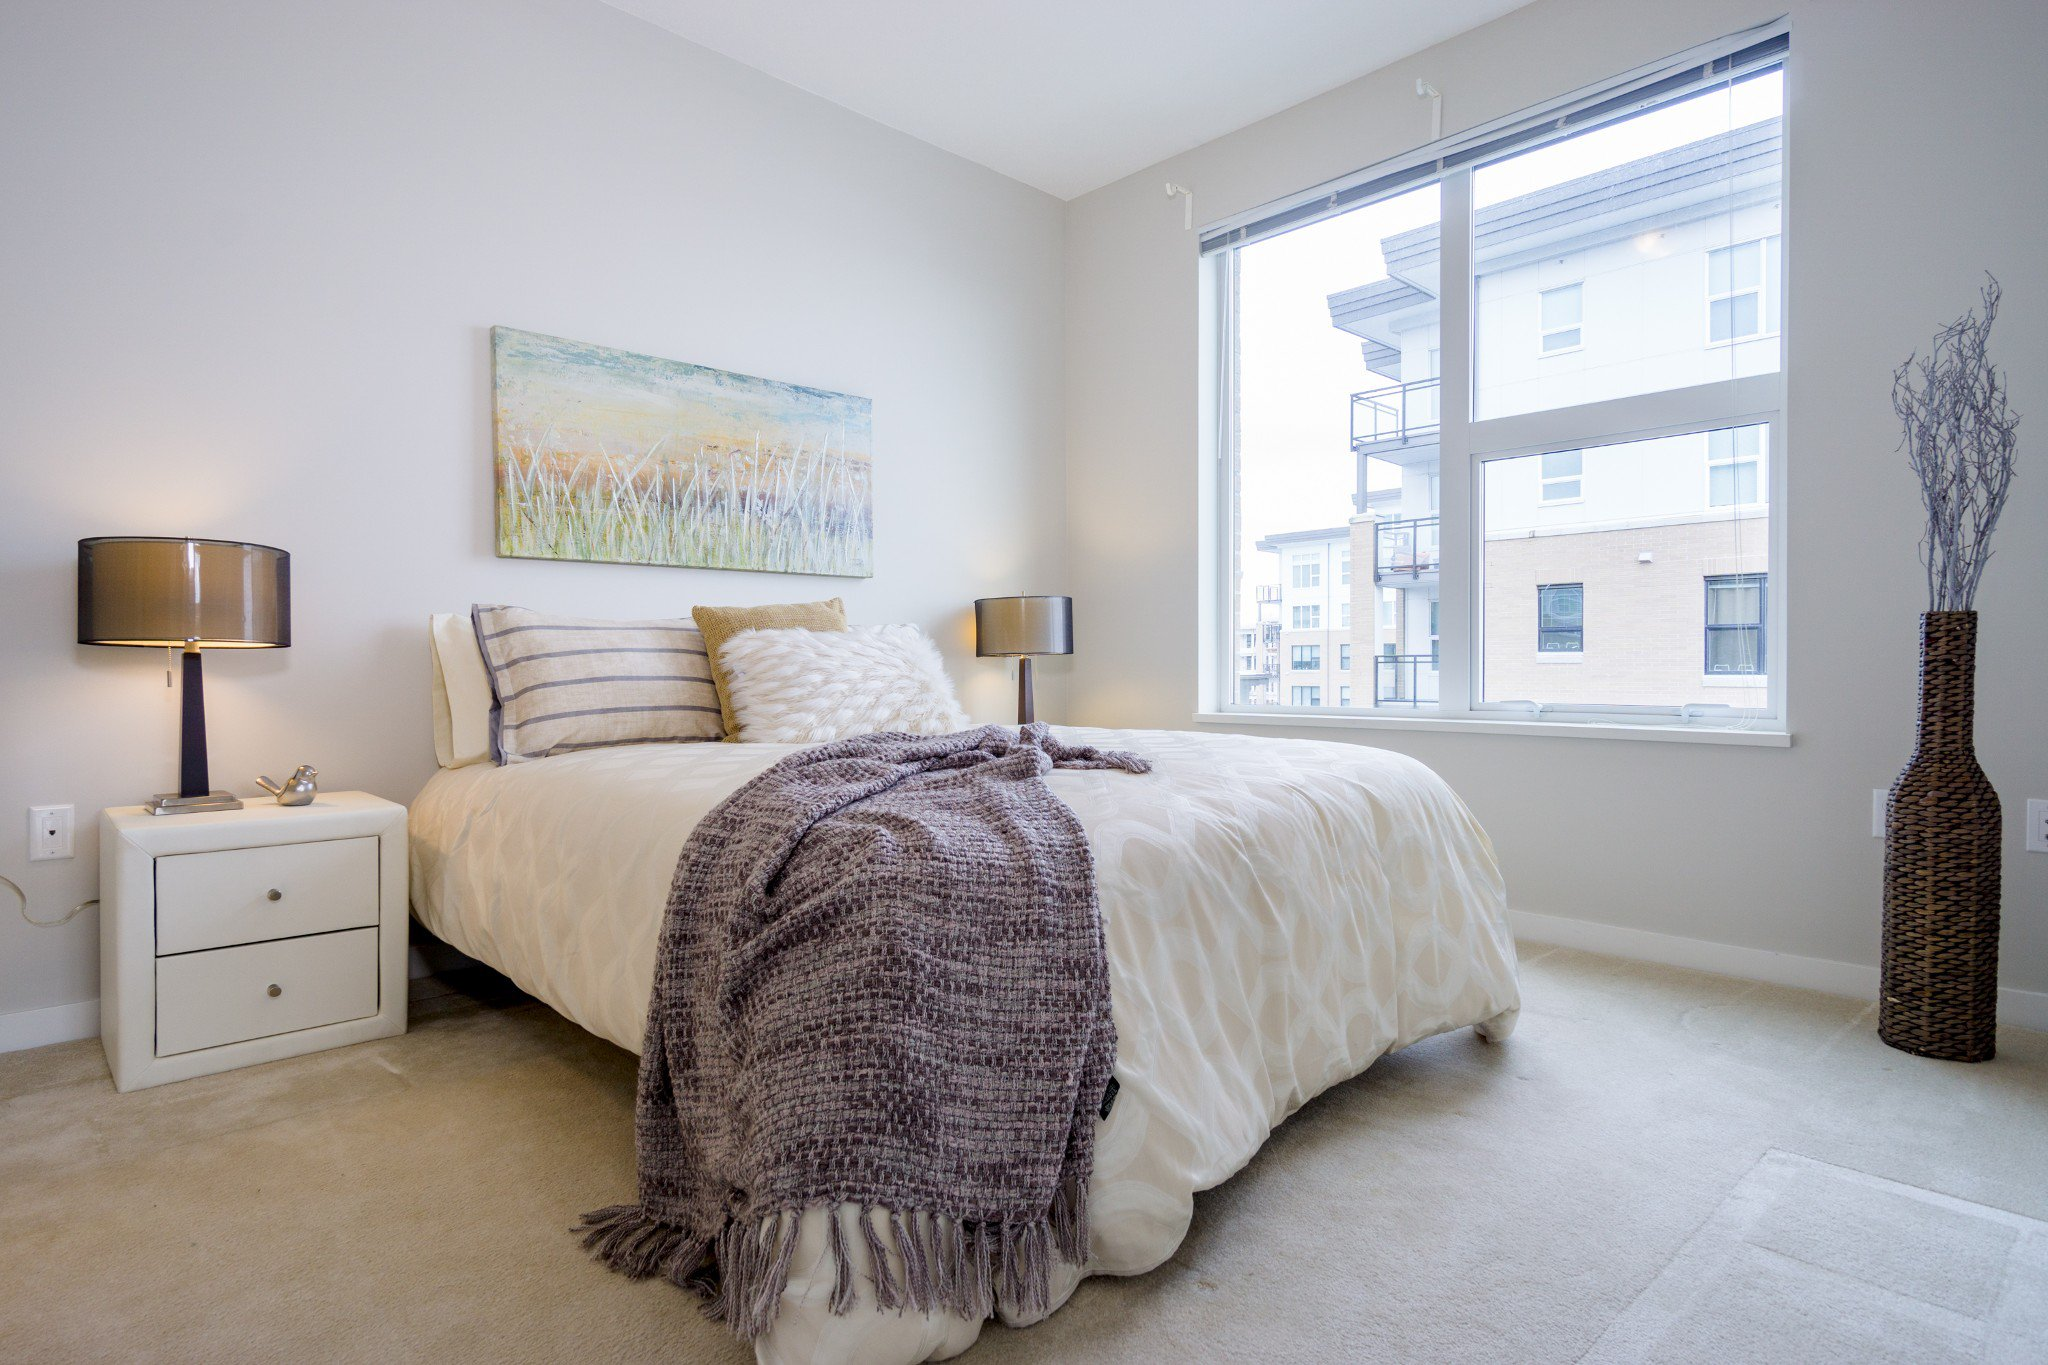 """Photo 20: Photos: 303 9311 ALEXANDRA Road in Richmond: West Cambie Condo for sale in """"ALEXANDRA COURT"""" : MLS®# R2347629"""